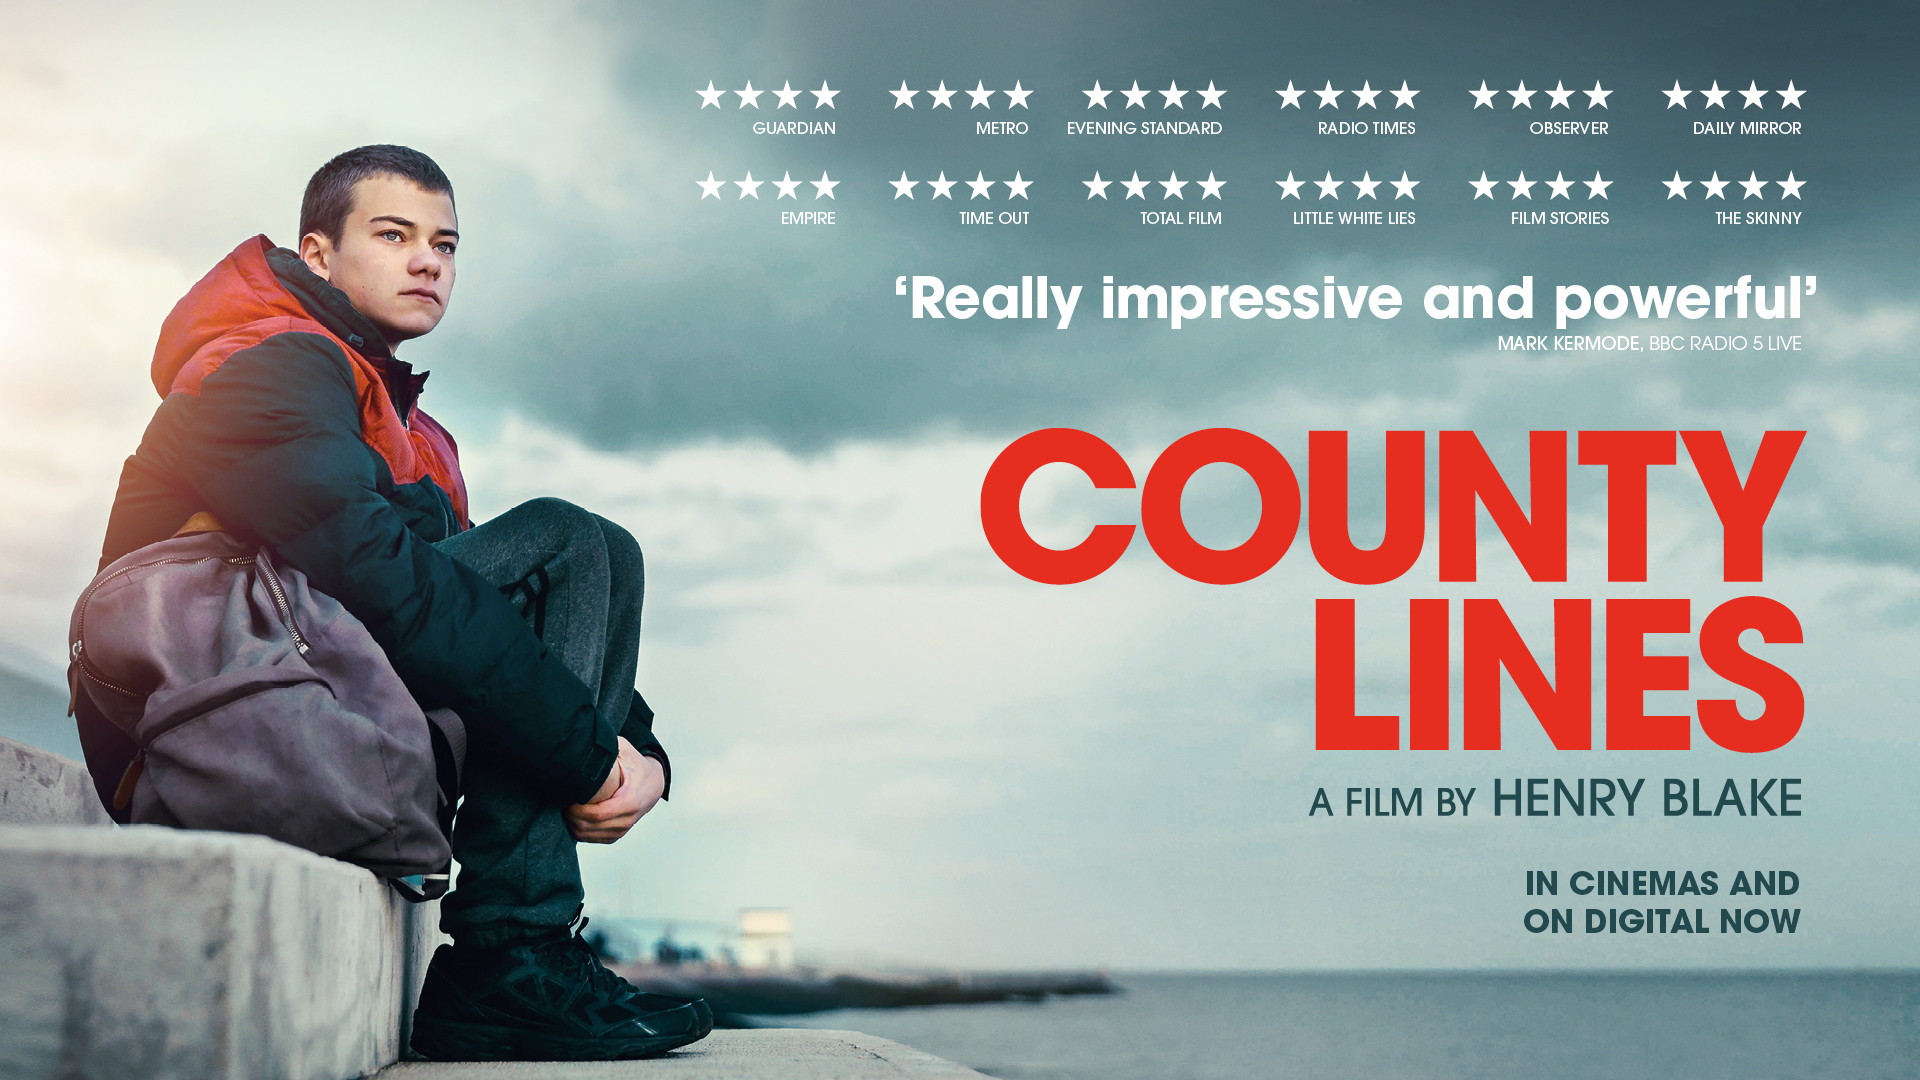 County Lines - A film by Henry Blake